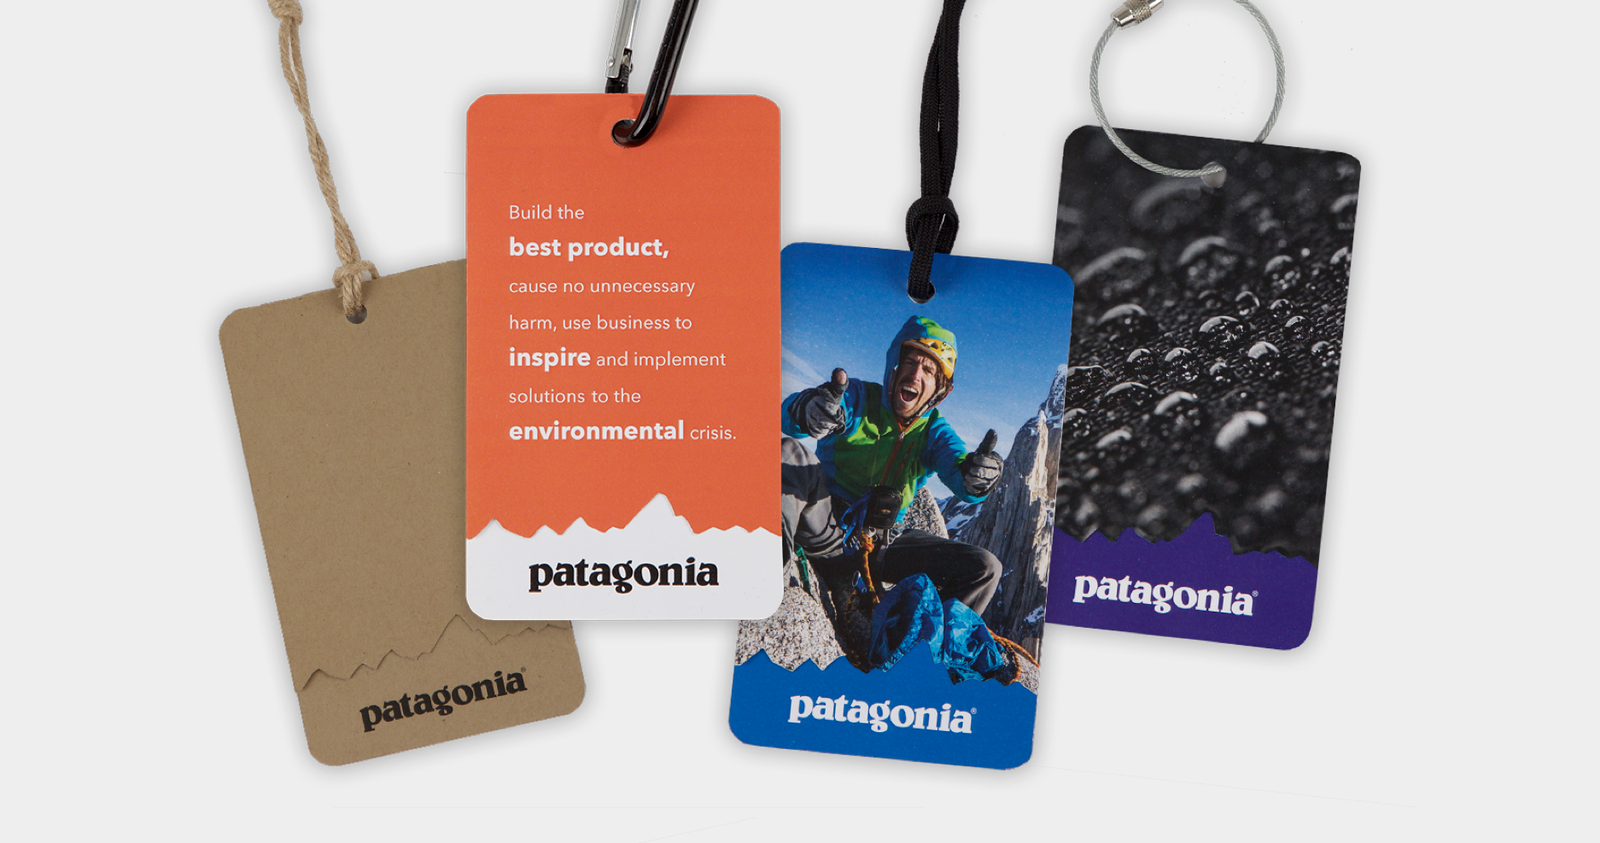 Patagonia Prototypes Together